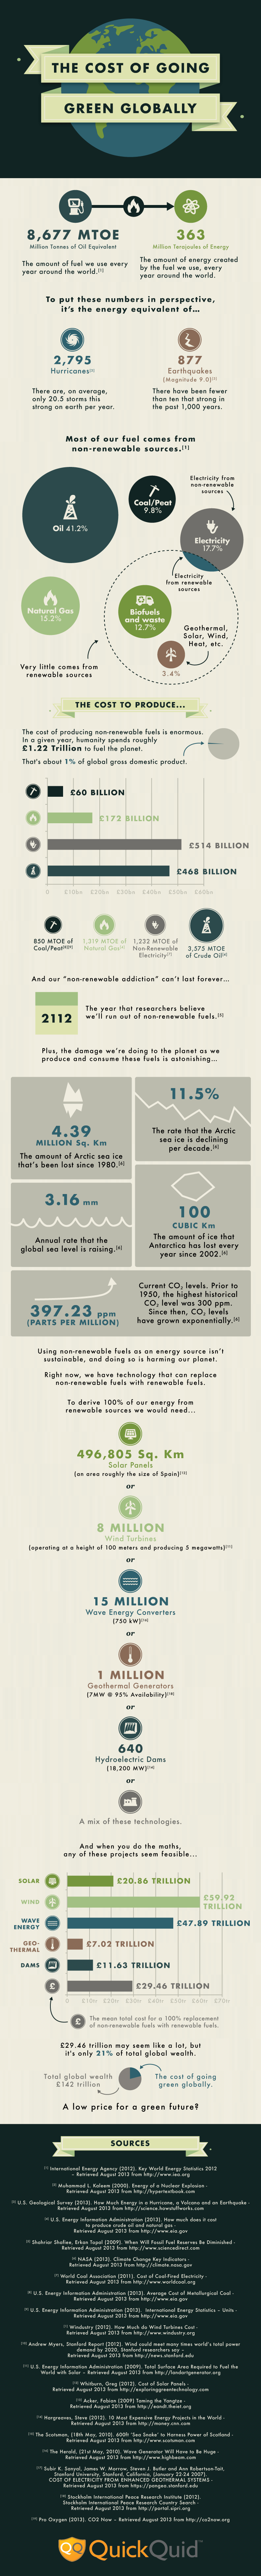 The Cost of Going Green Globally Infographic